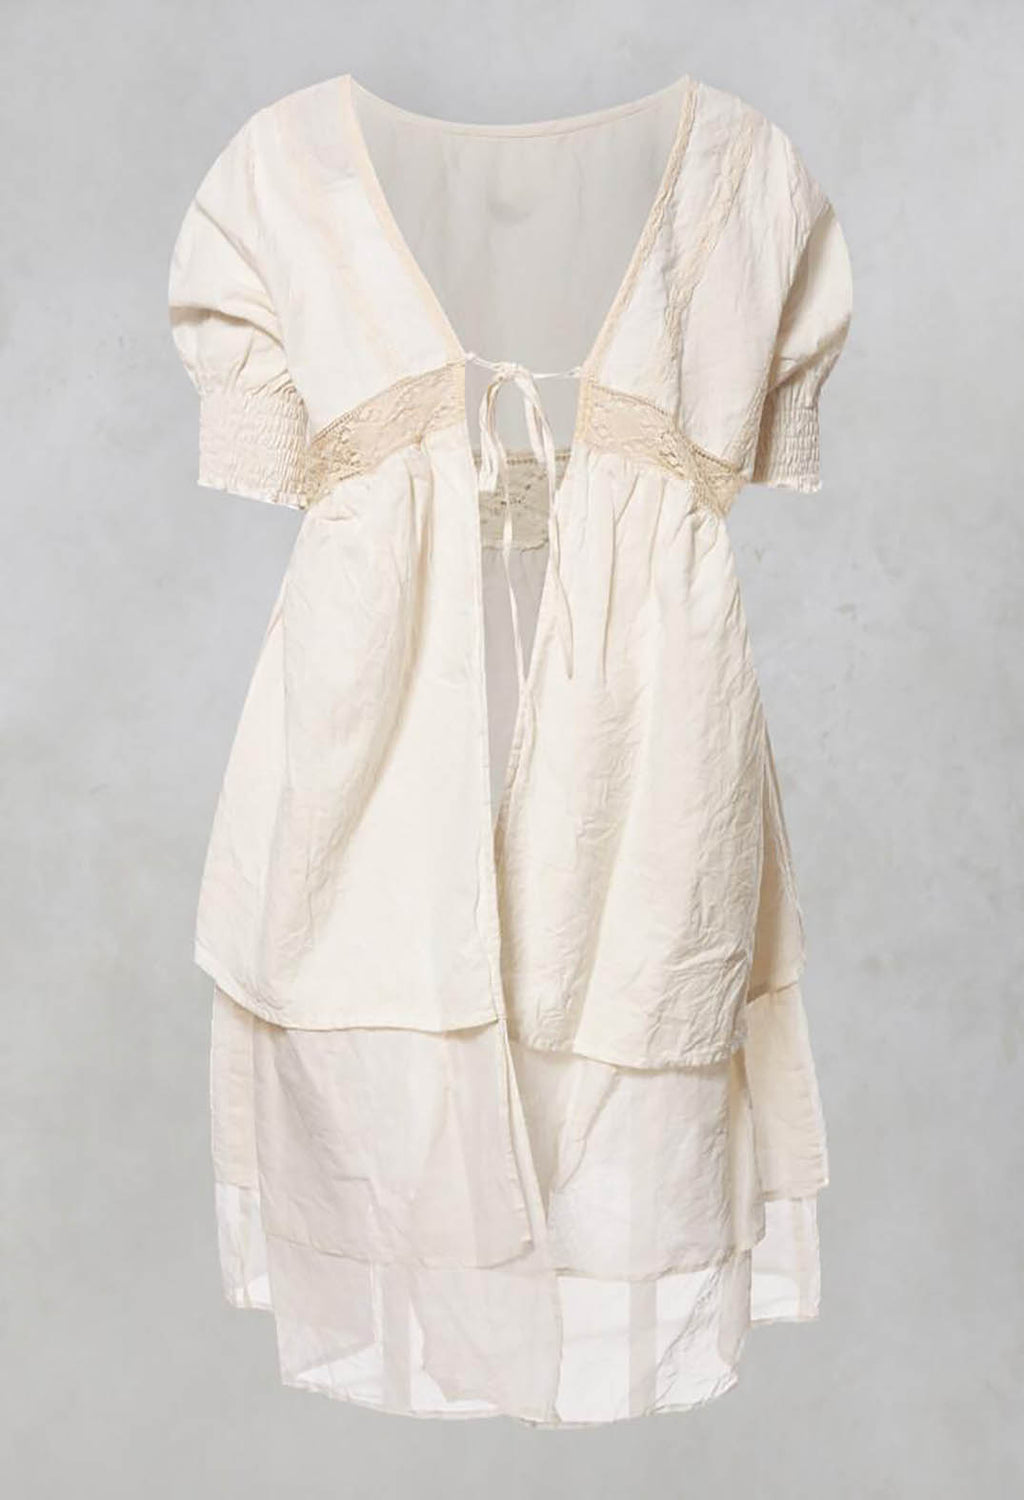 Anja Smock Top with Lace Detailing and Tie Back in Coton Ecru